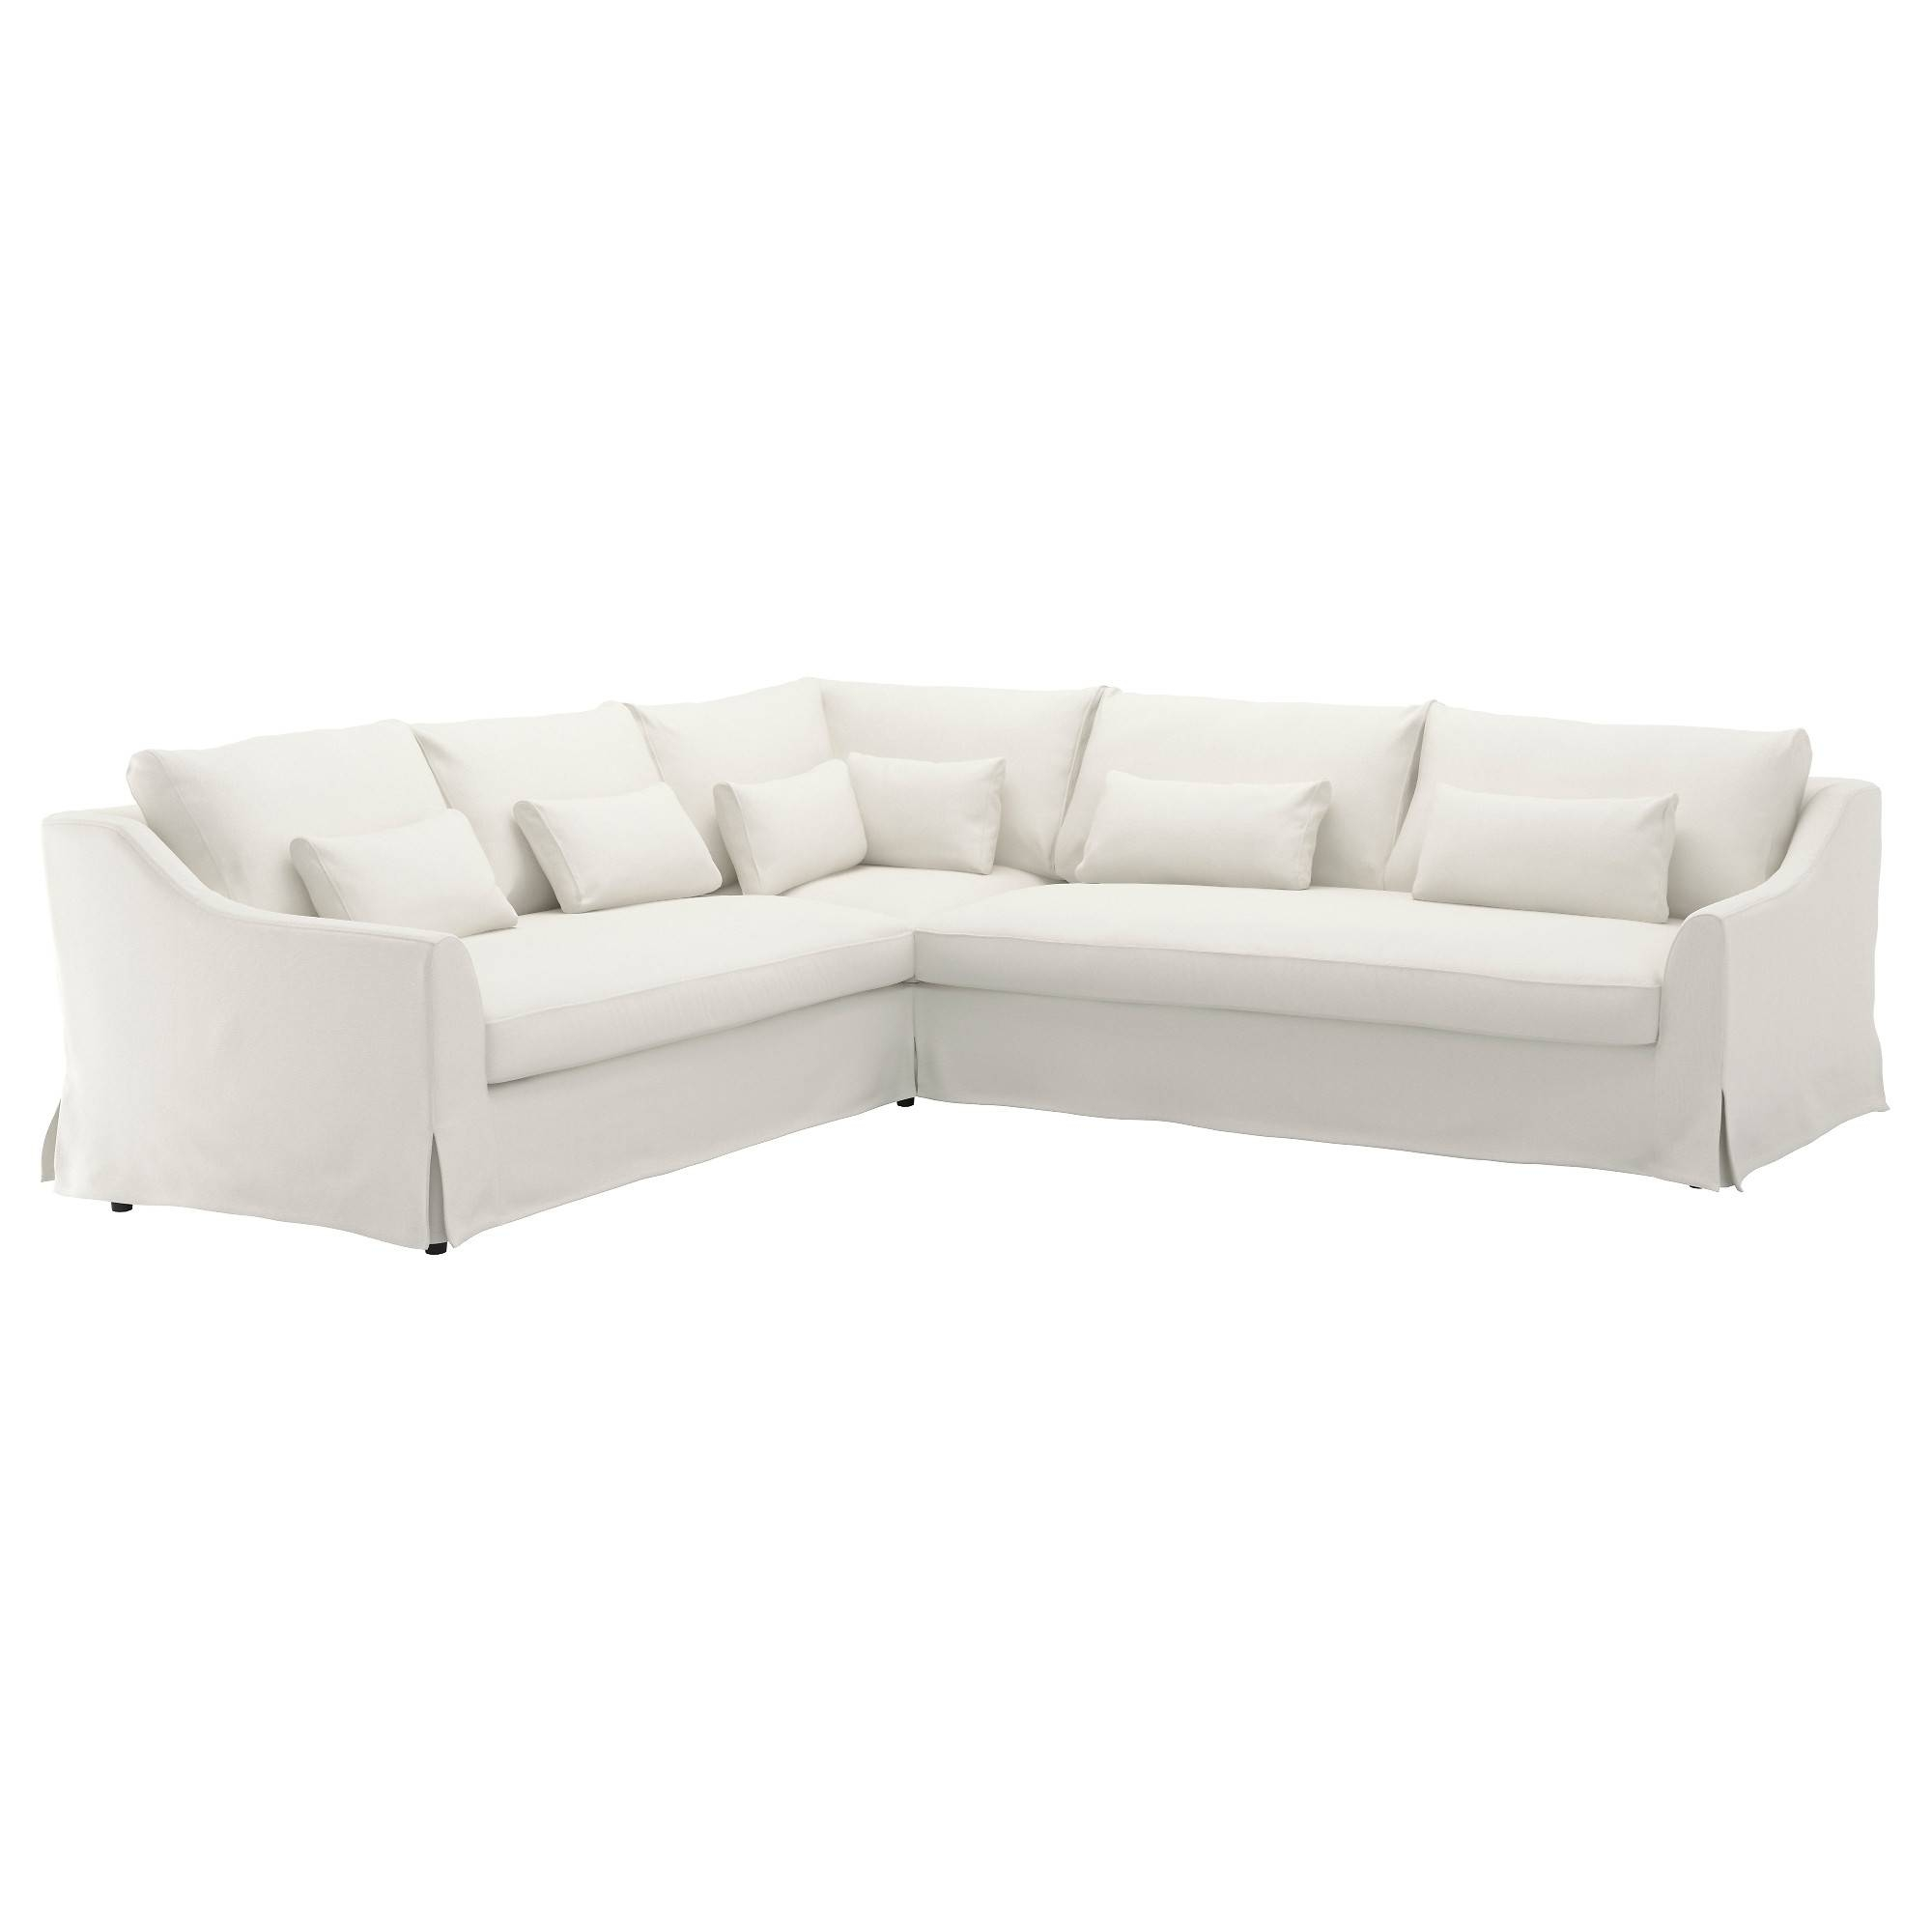 Fabric Sectional Sofas - Ikea pertaining to Ikea Sectional Sofa Bed (Image 1 of 25)